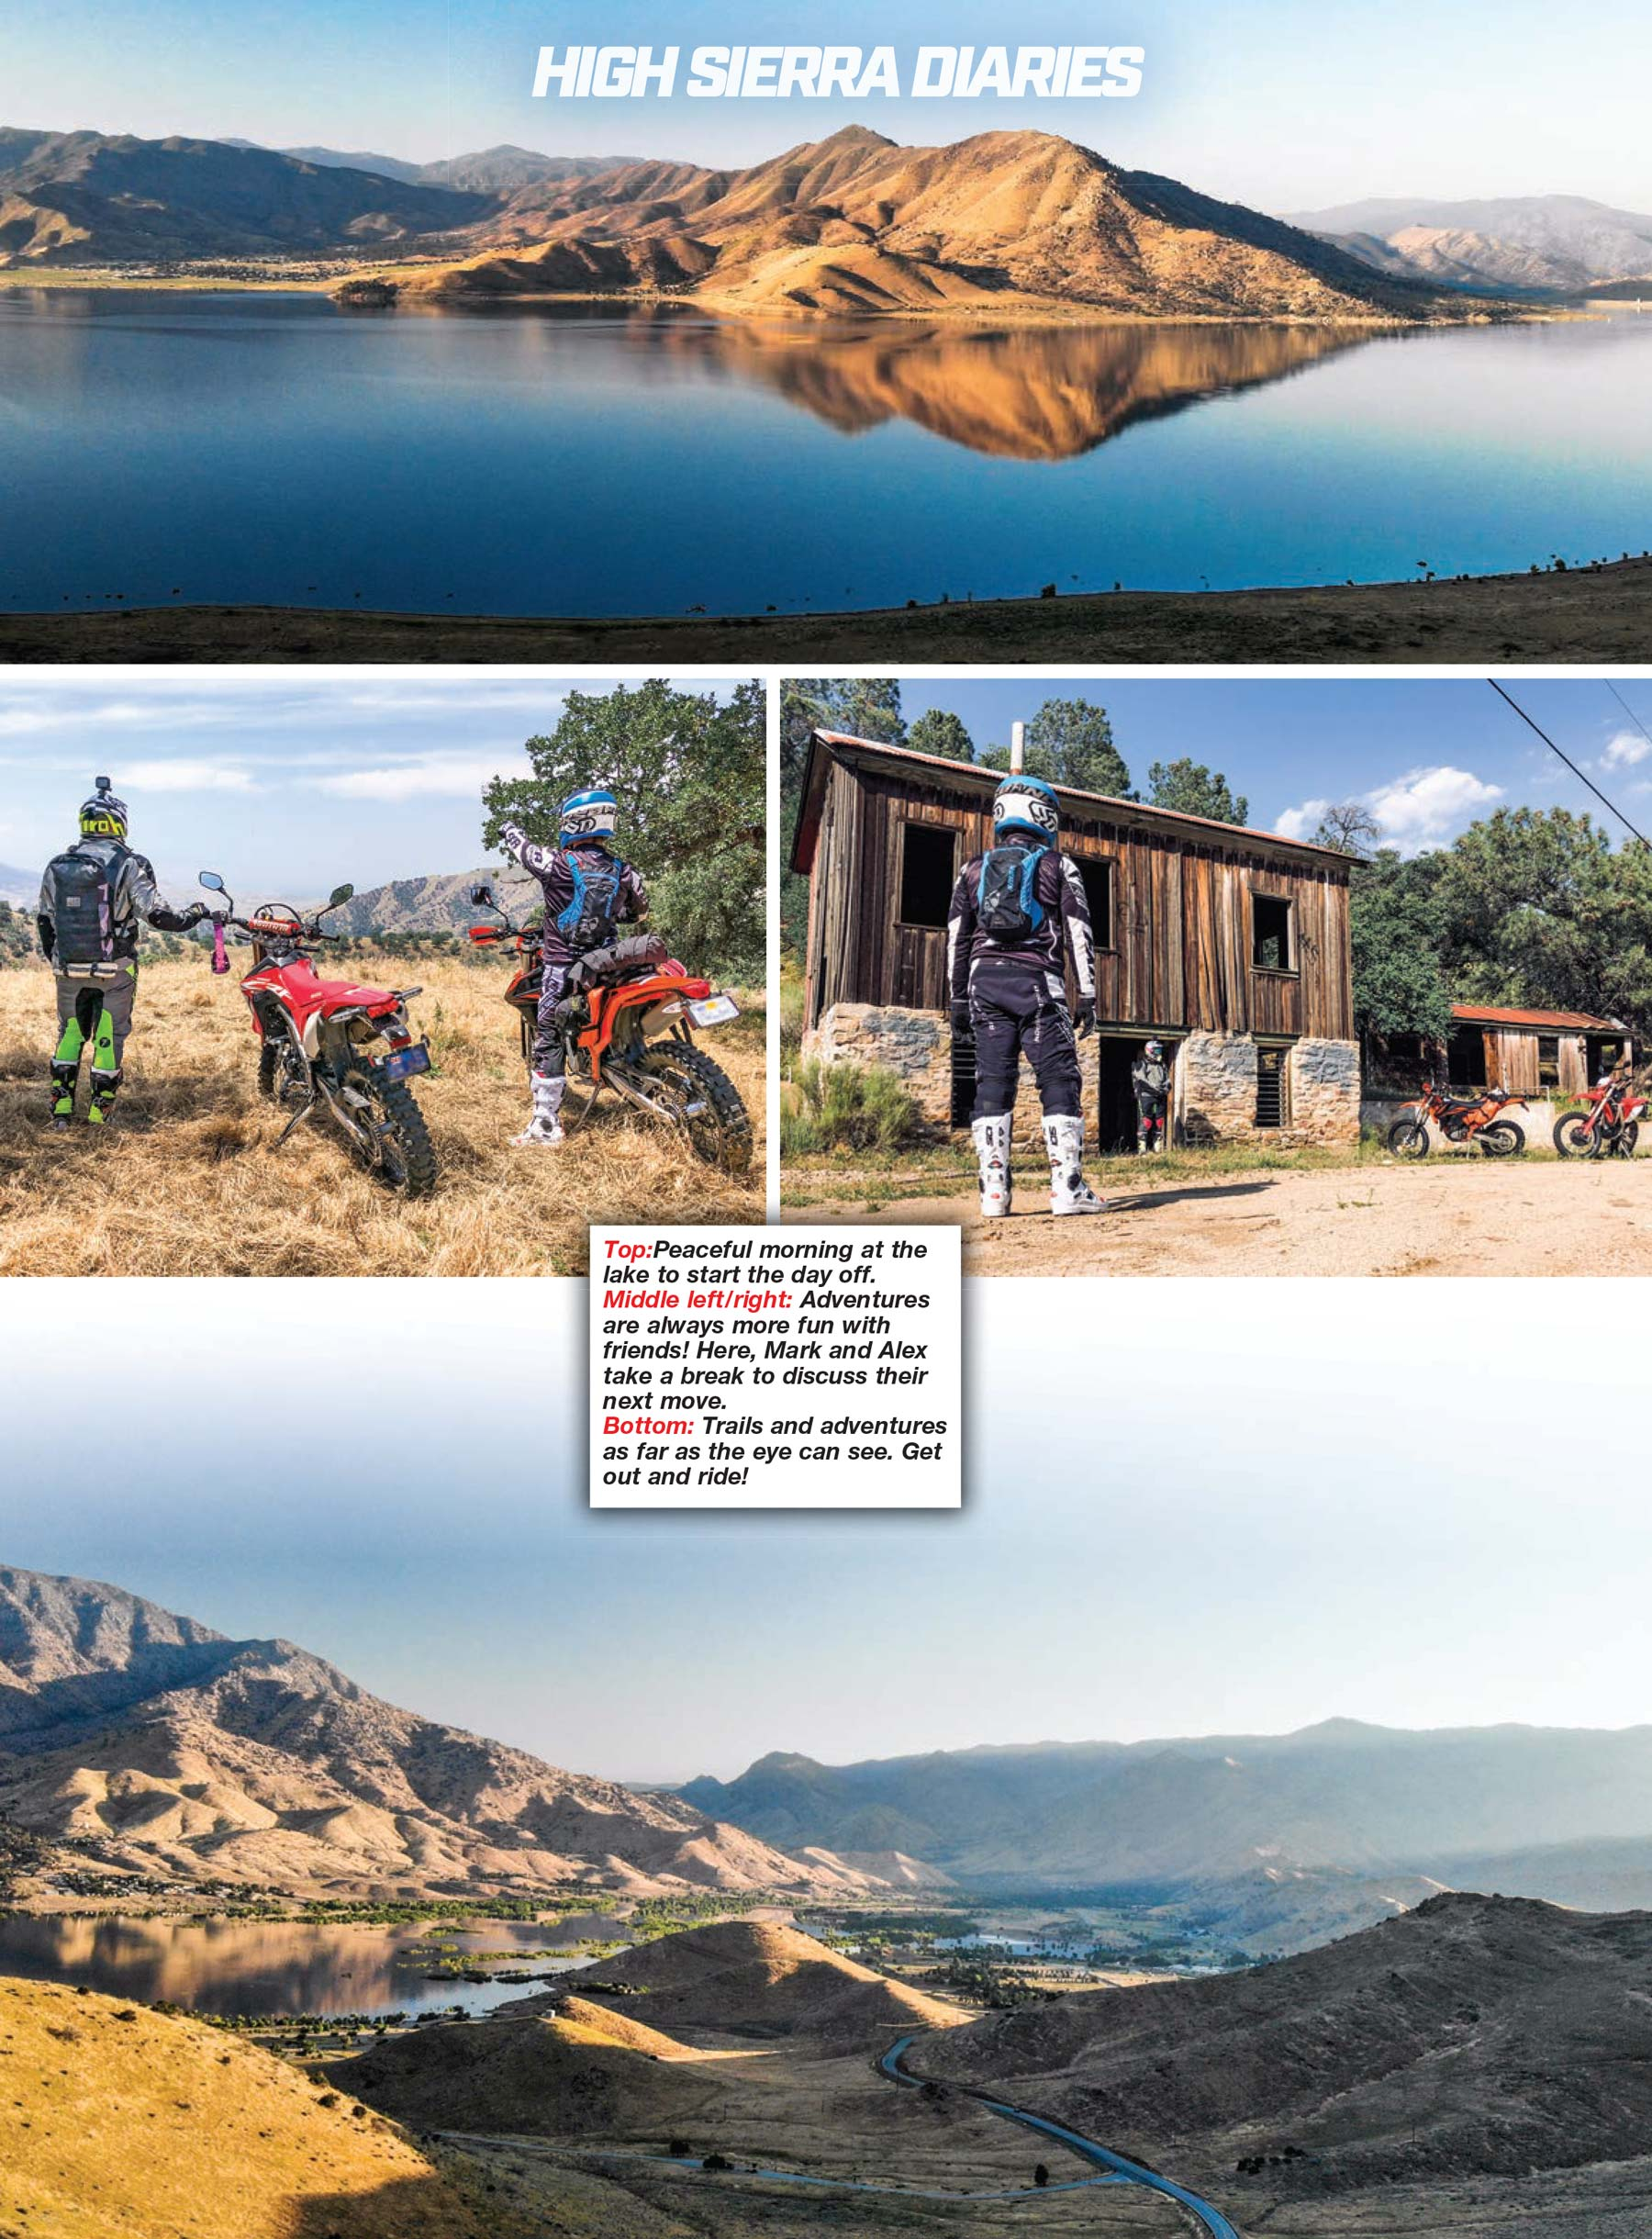 high-sierra-diaries-dirtbikemag-lasleeve-03